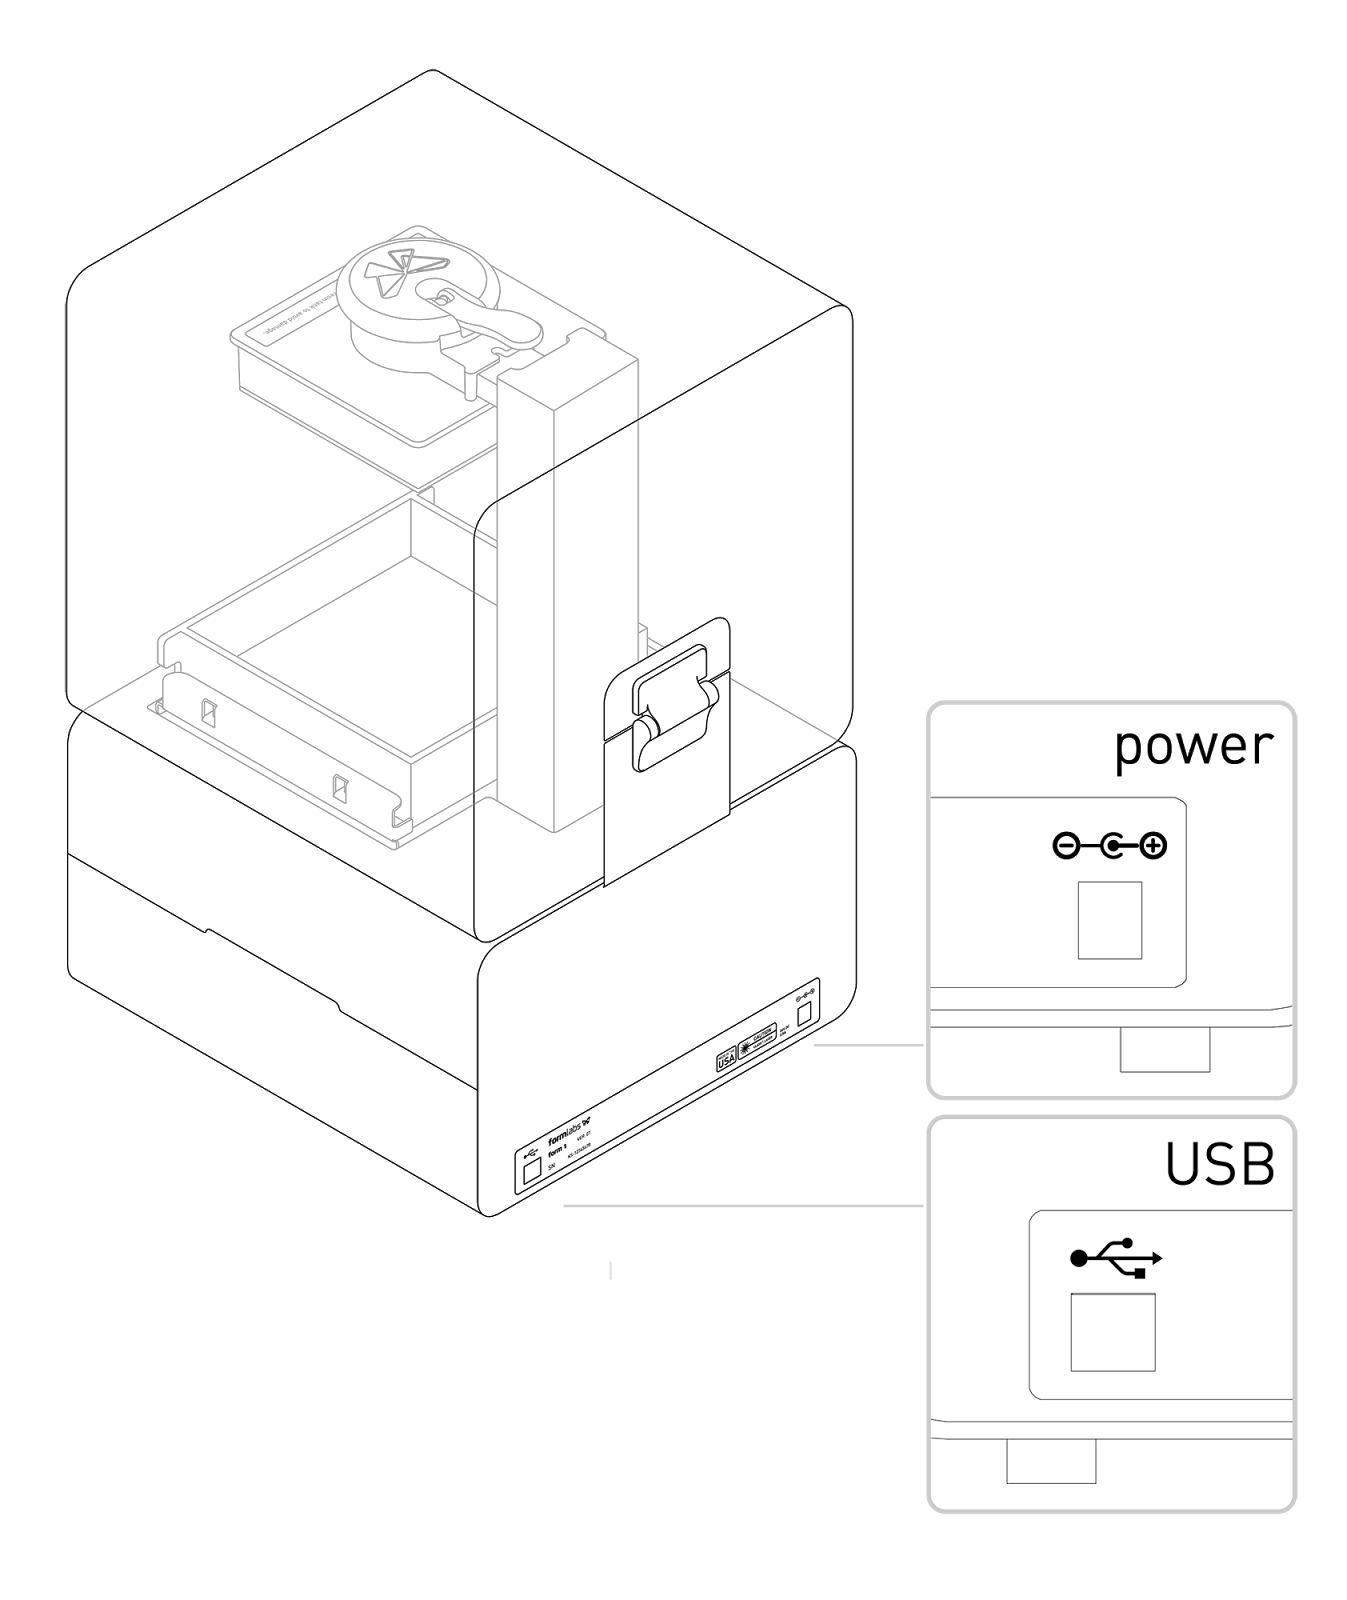 Connecting the printer to power